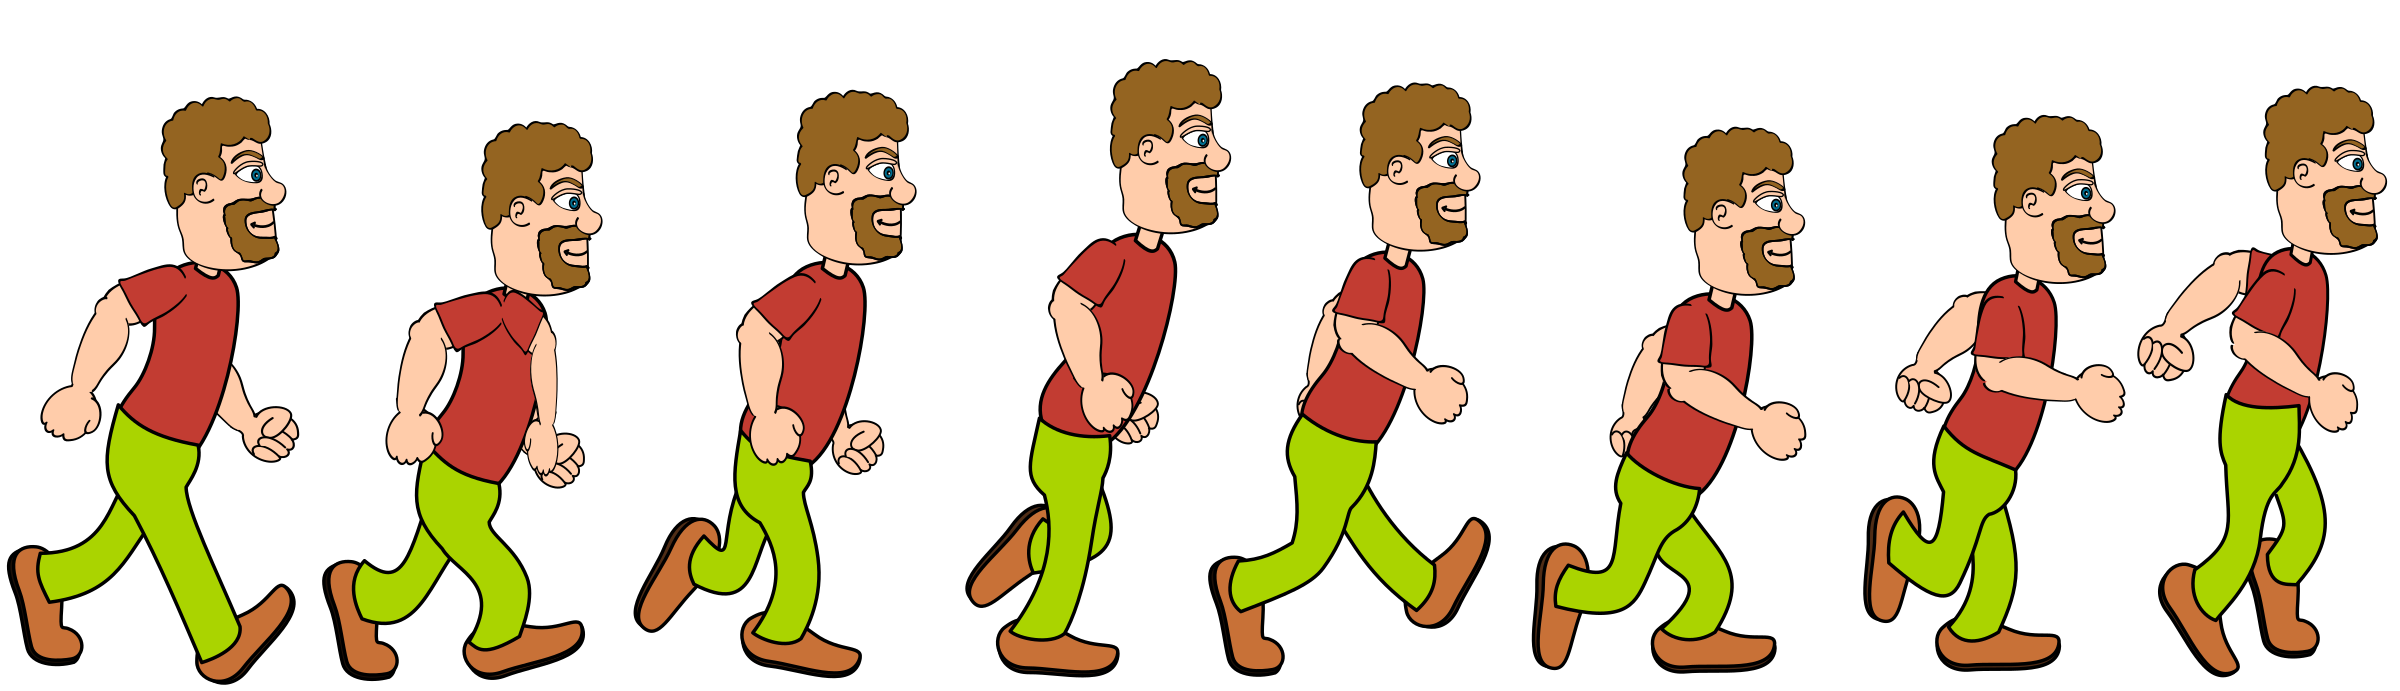 Conversation clipart walking. With torso head and